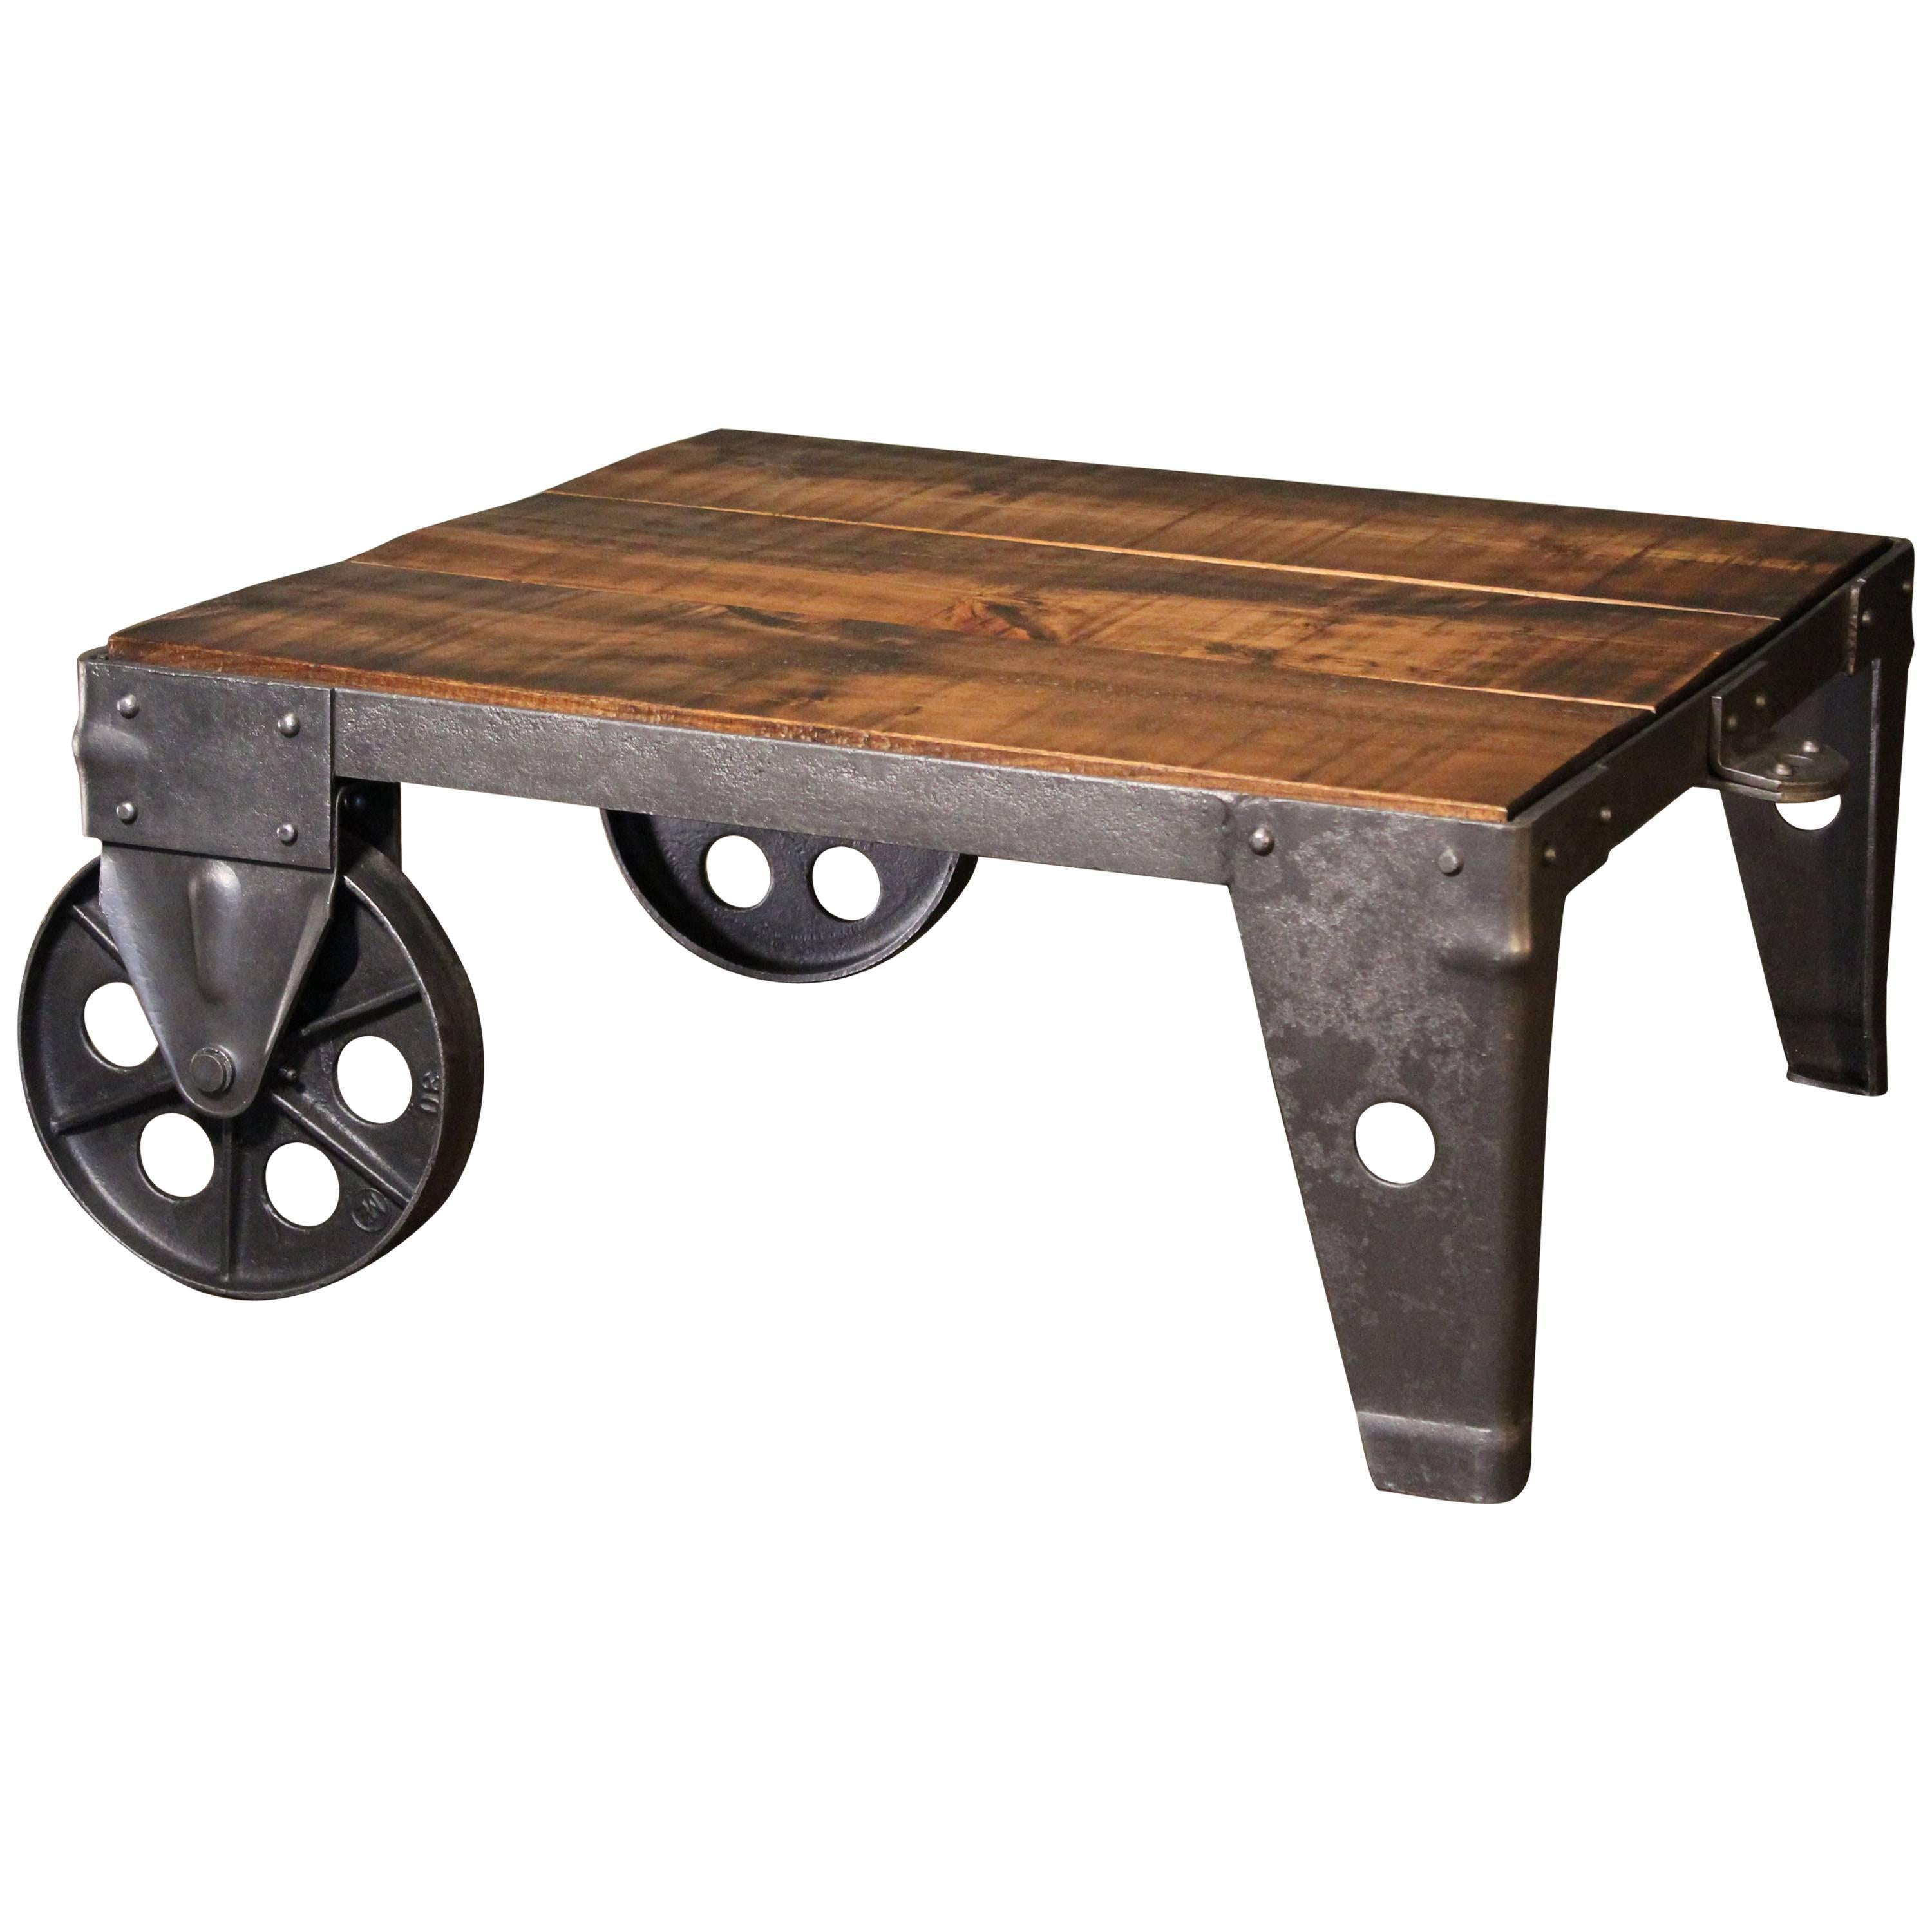 authentic vintage industrial cart coffee table factory shop wood steel and iron